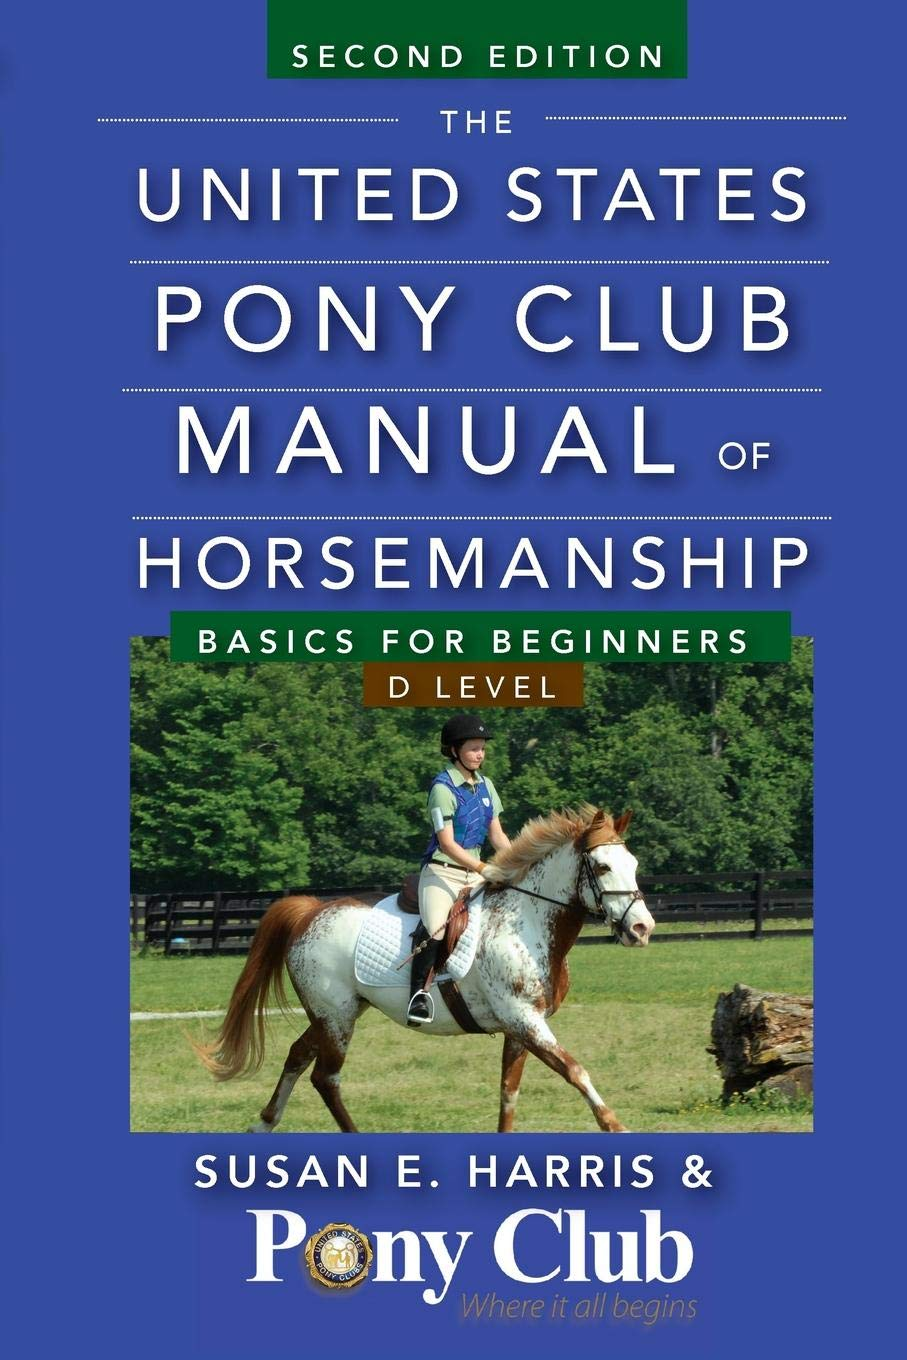 Image OfThe United States Pony Club Manual Of Horsemanship: Basics For Beginners / D Level